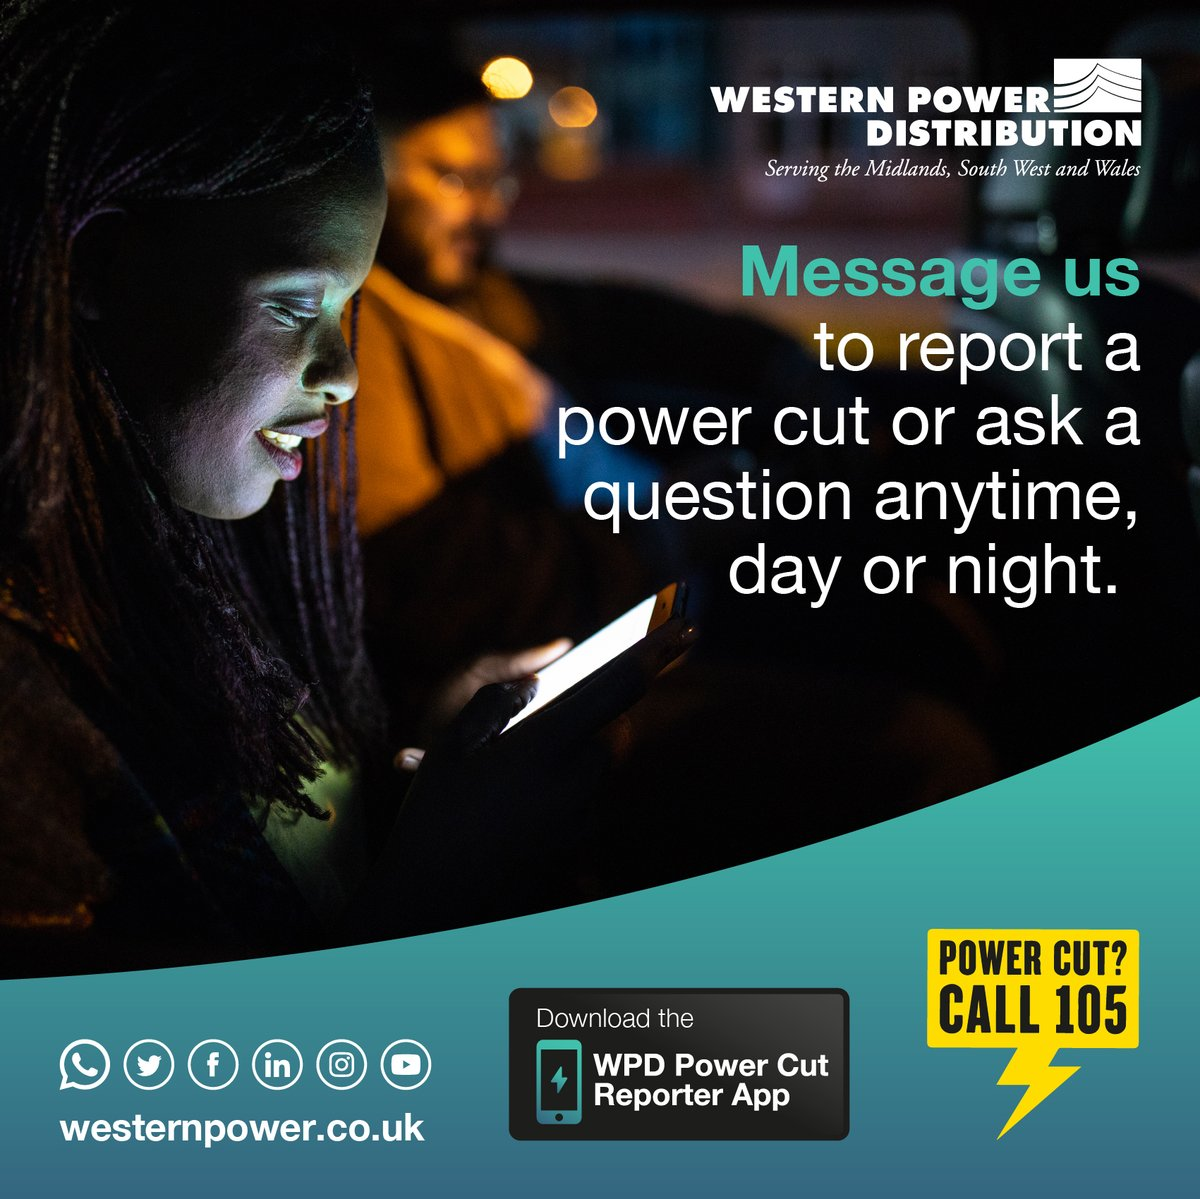 We may not be able to see our loved ones in person at the moment, but you can use our #PowerCut Reporter App to check for power cuts in their area and to sign up to our PSR for extra support in an outage.  https://t.co/jzk43s0B2v https://t.co/W9xzwvm9cC